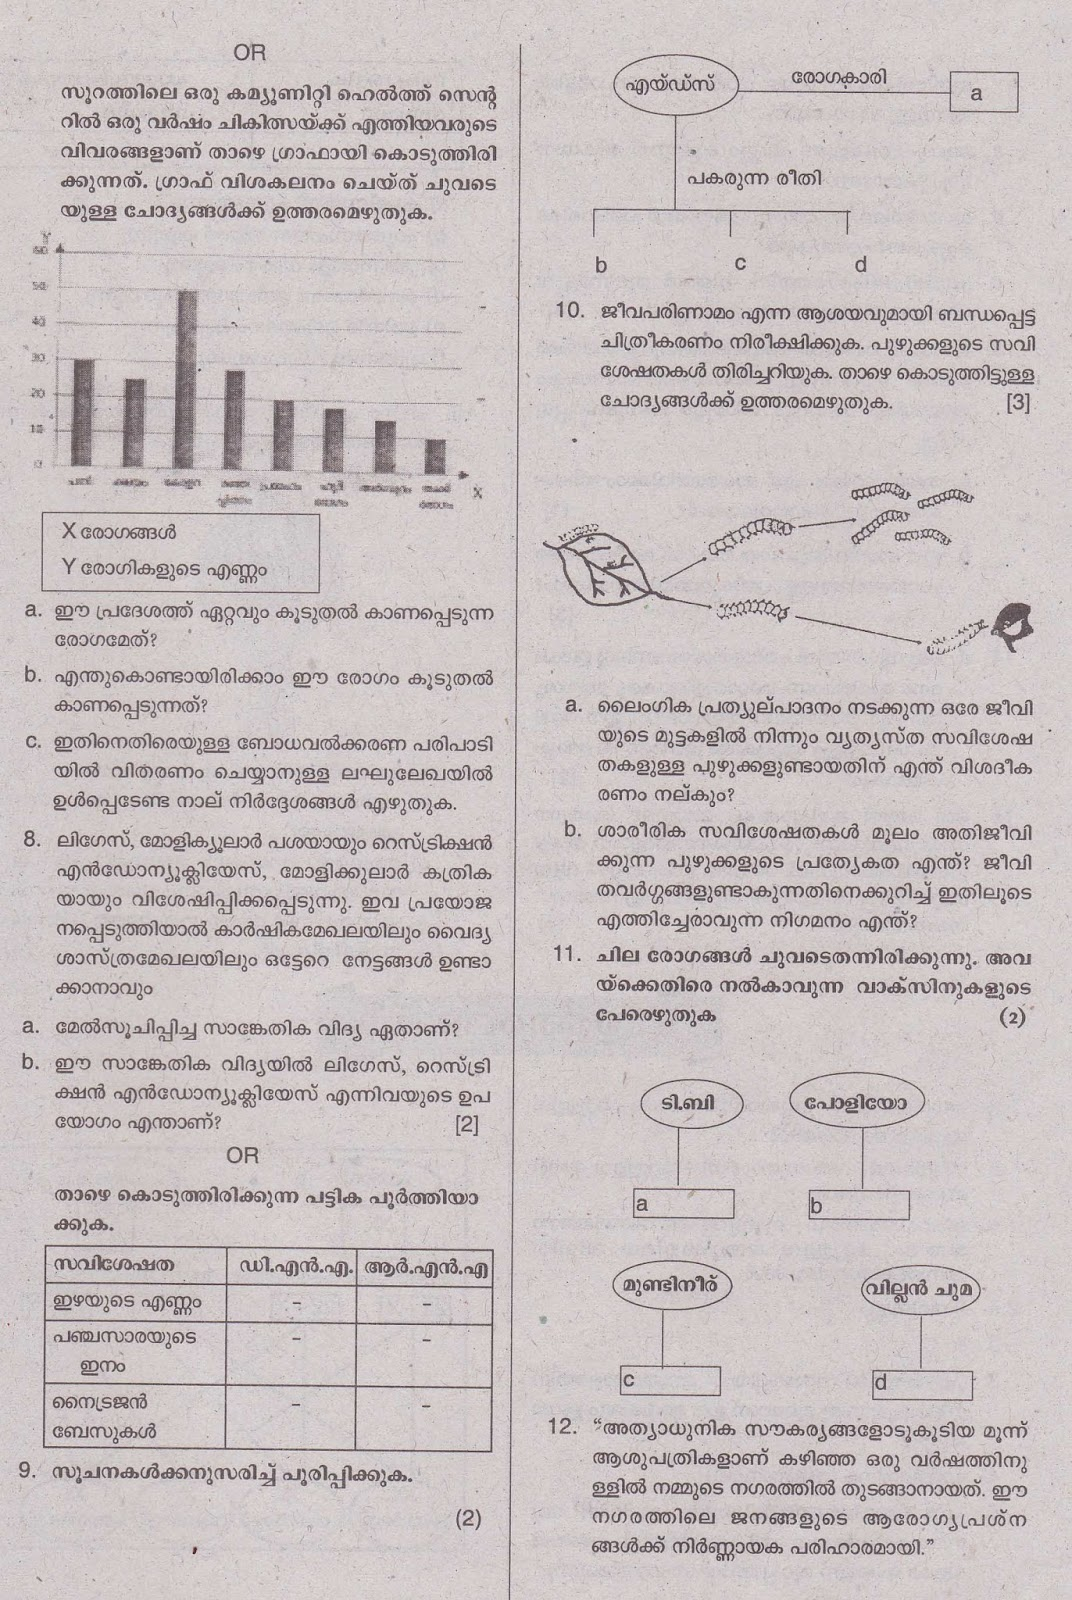 sslc chemistry question paper Designed & hosted by content owned & maintained by karnataka secondary education examination board, 6th cross, malleshwaram.